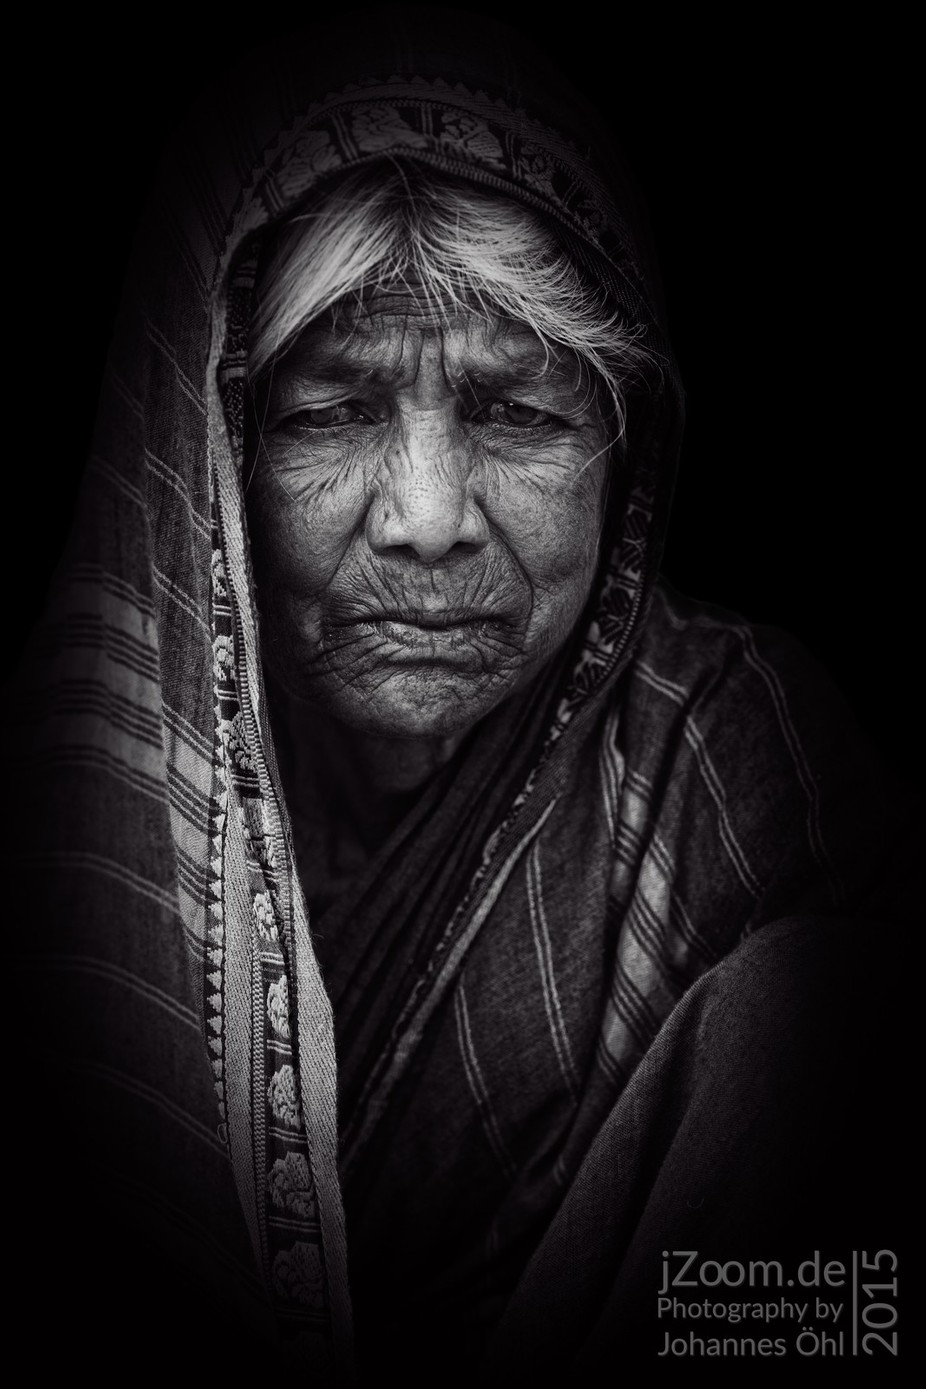 Dignity by johannesoehl - Everything In Black And White Photo Contest